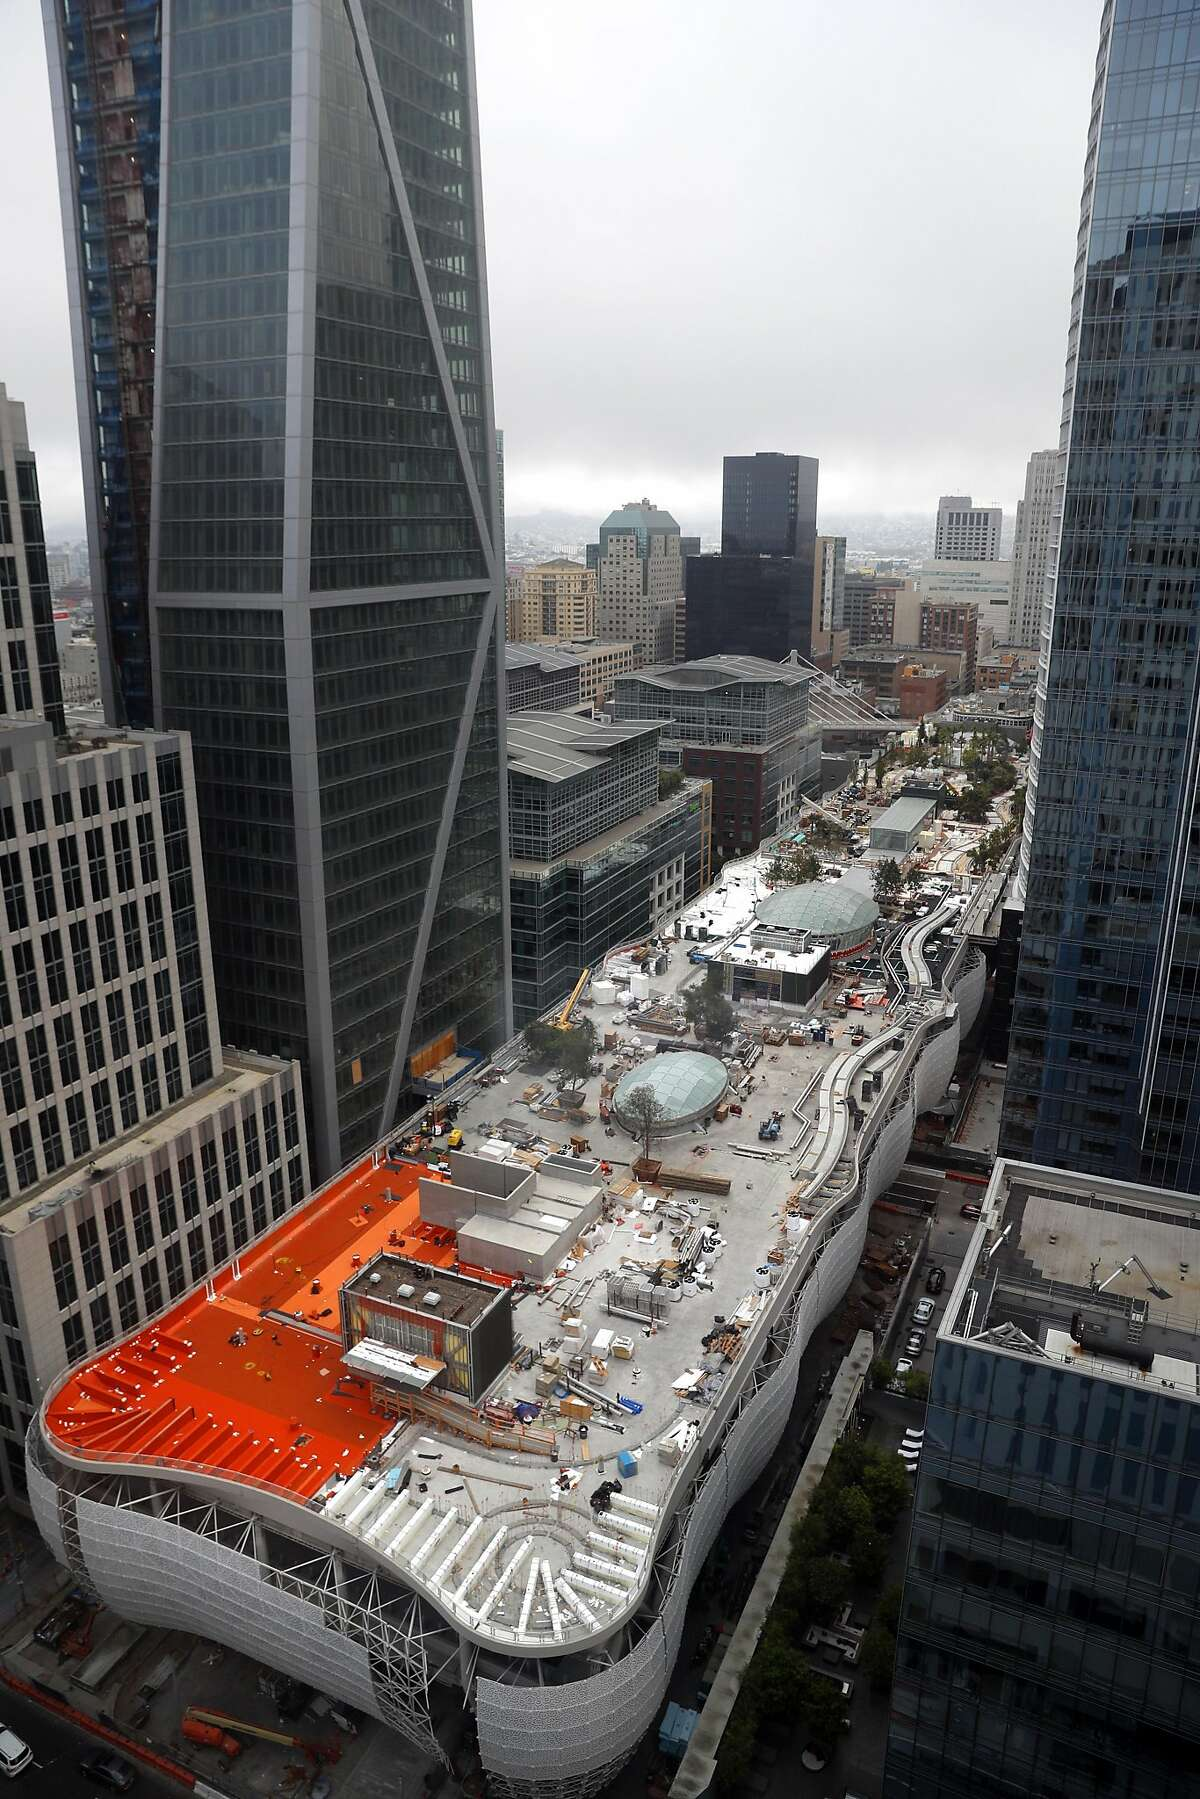 The view from above at the site of the new Transbay Terminal which is still under construction in San Francisco, on Wednesday, August 23, 2017.at the site of the new Transbay Terminal which is still under construction in San Francisco, on Wednesday, August 23, 2017.